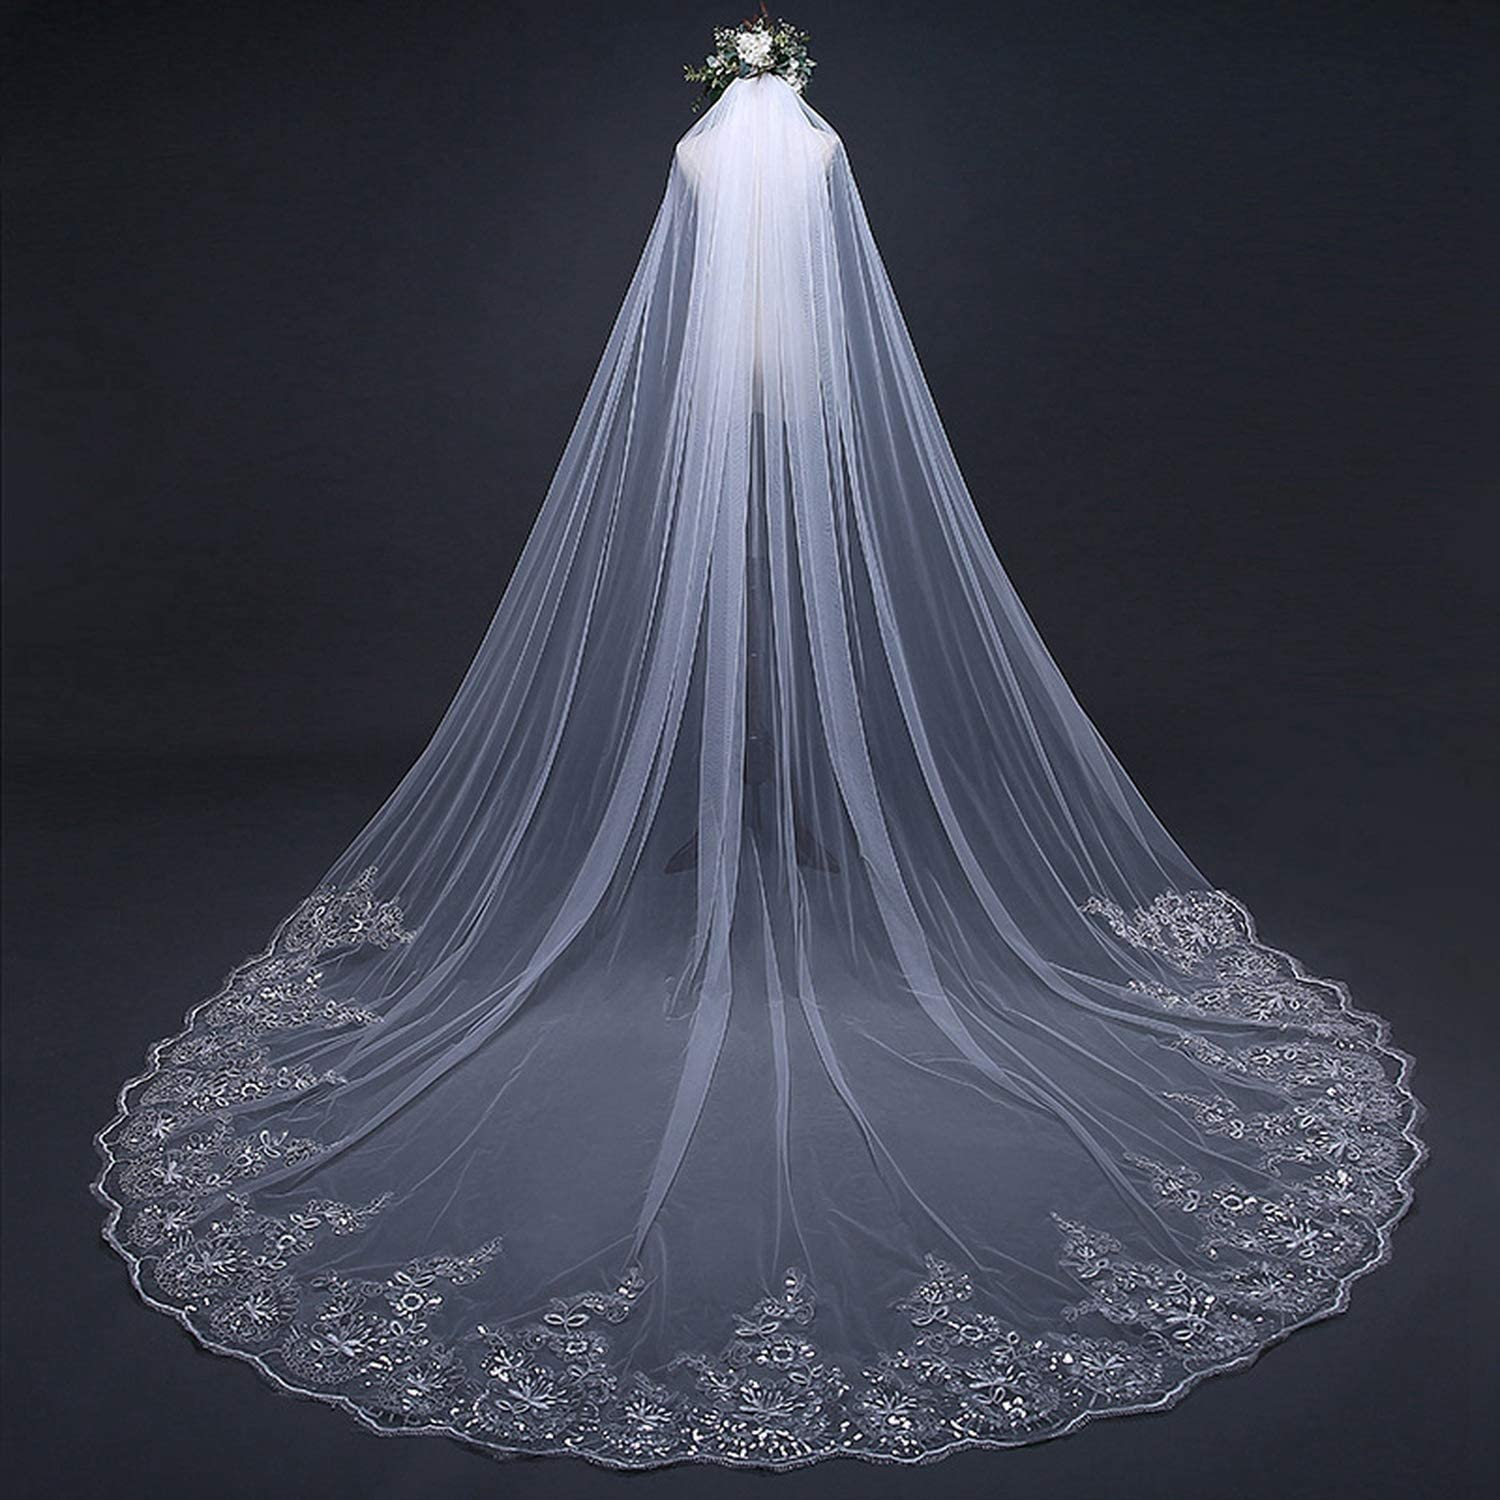 Lace Appliques White Ivory Cathedral Wedding Veils Long Lace Bridal Veil with Comb Wedding Accessories veils